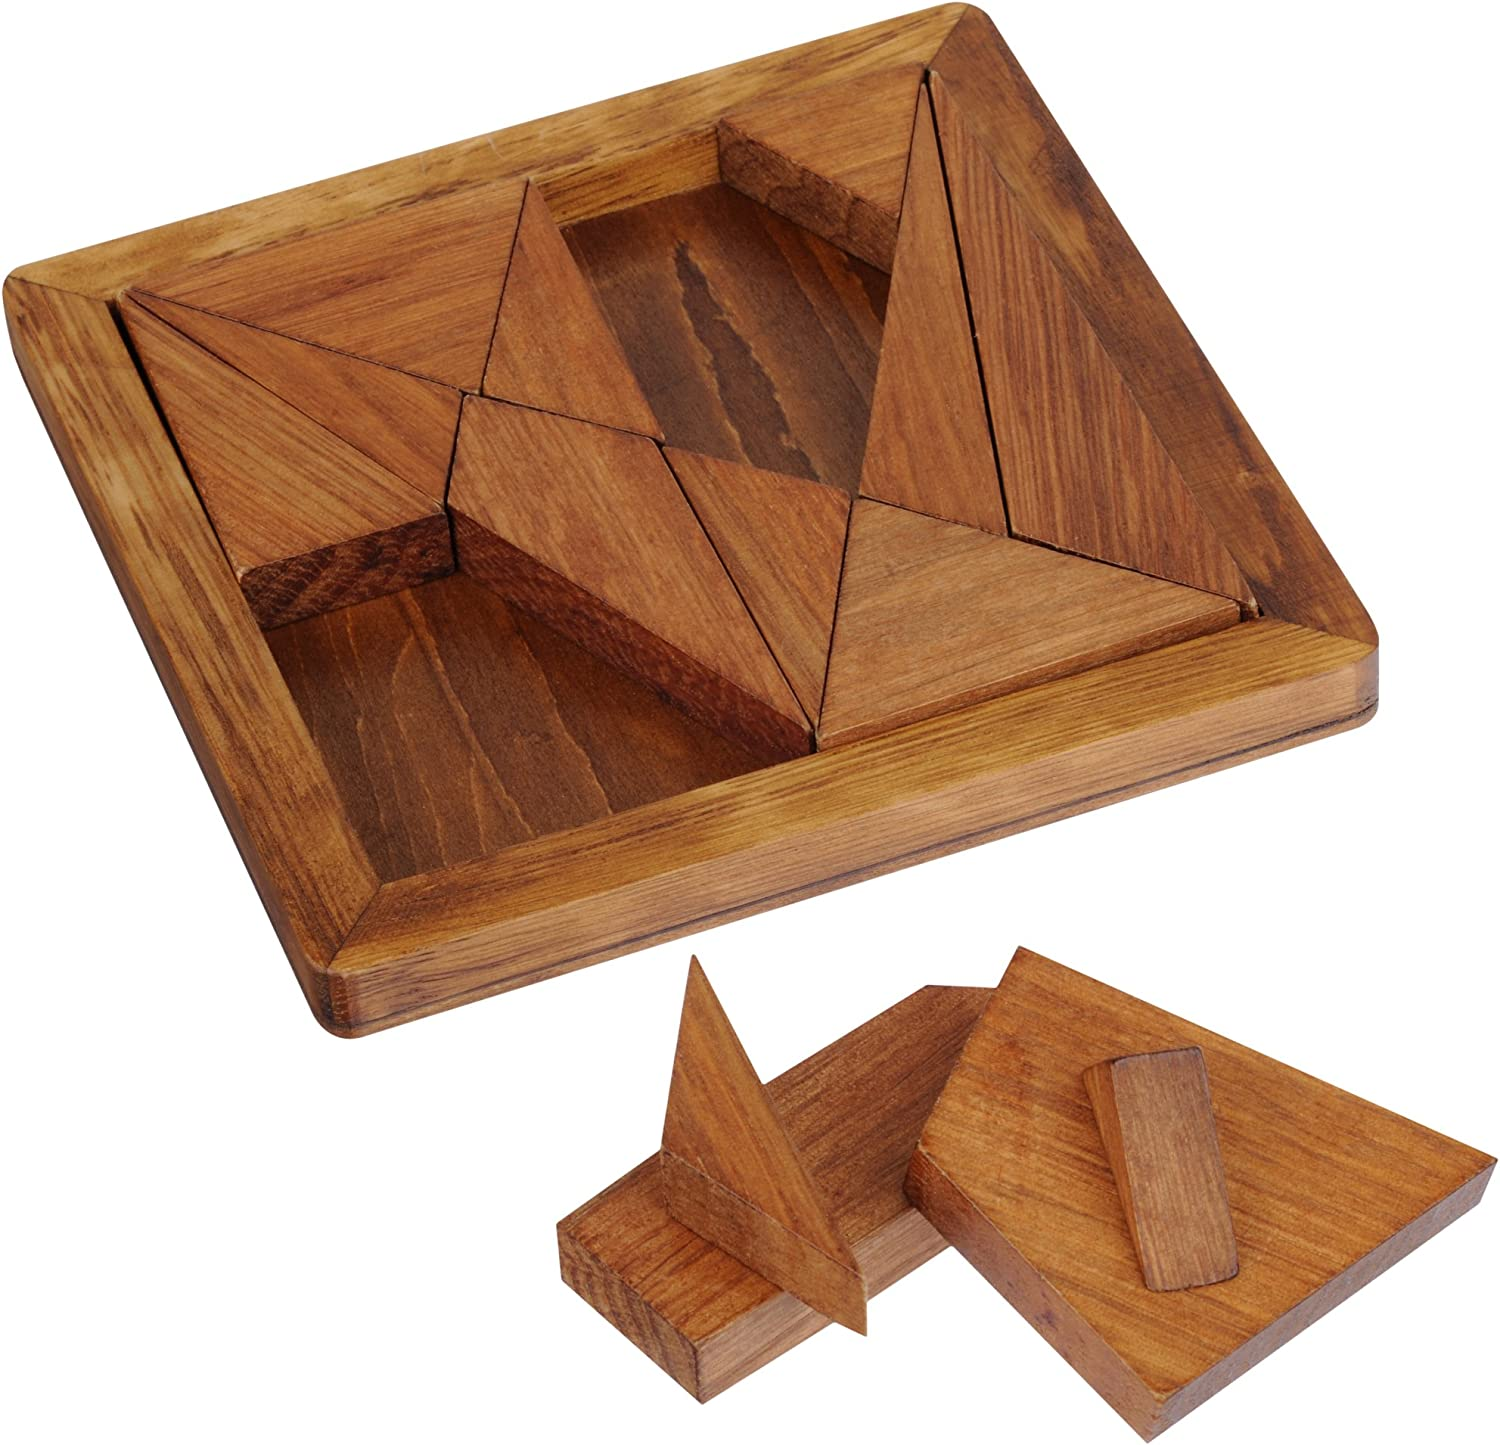 The Great Minds Range Archimedes Tangram Puzzle